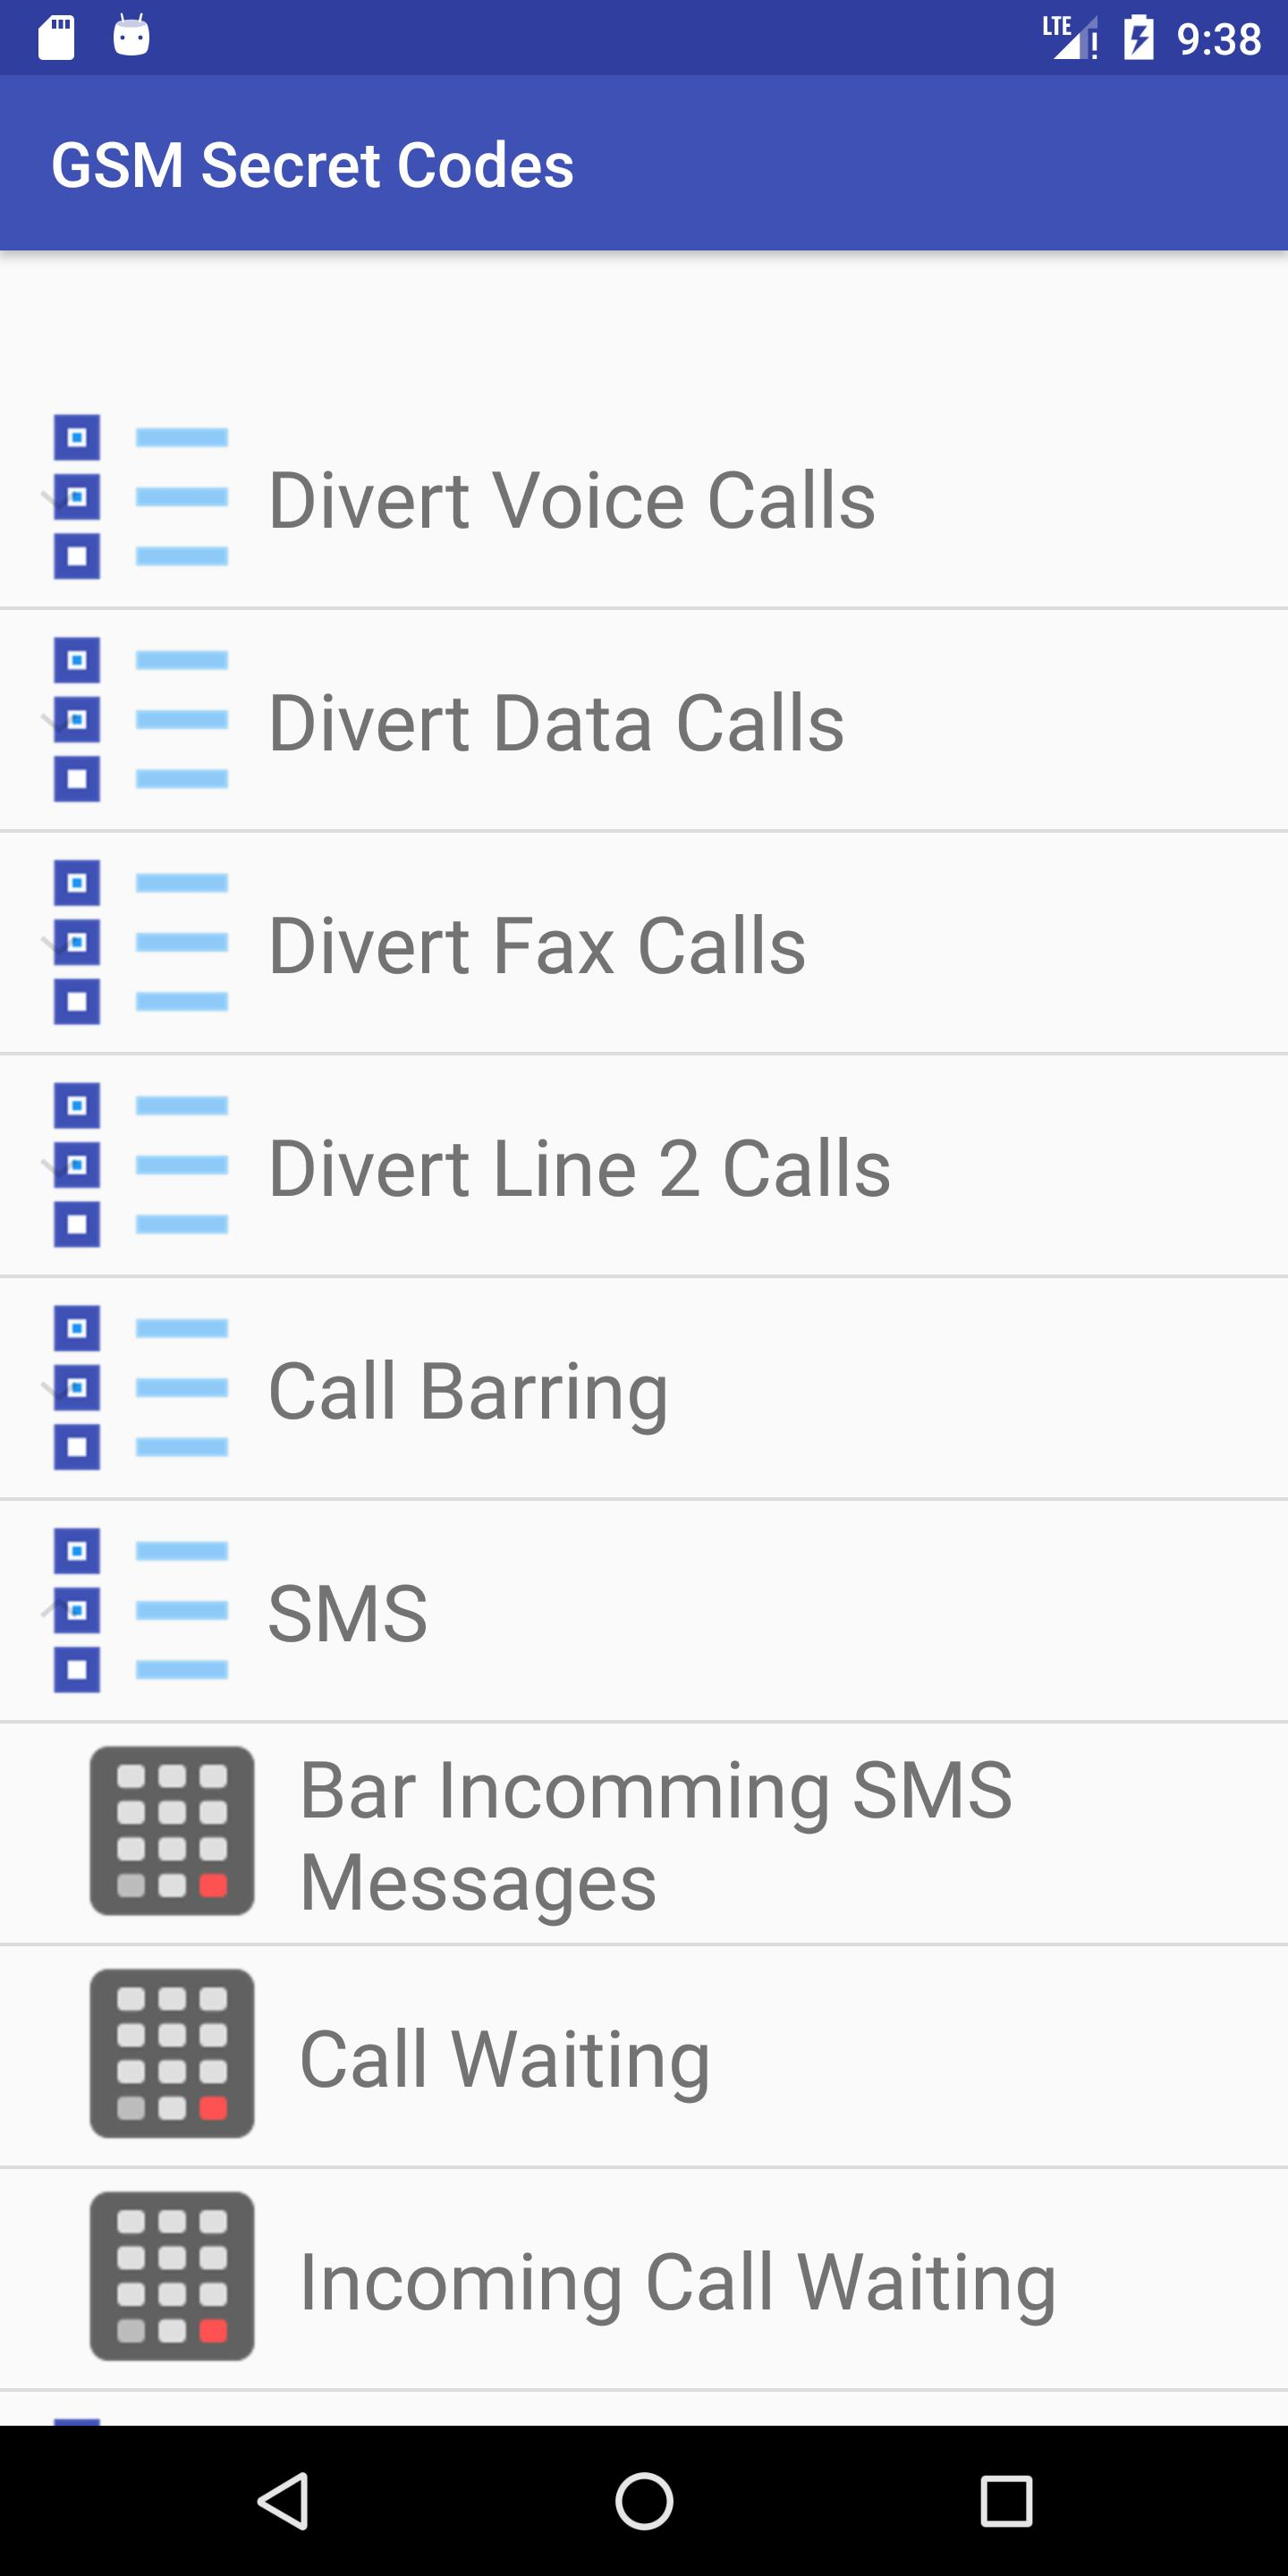 All GSM Secret Codes for Android - APK Download